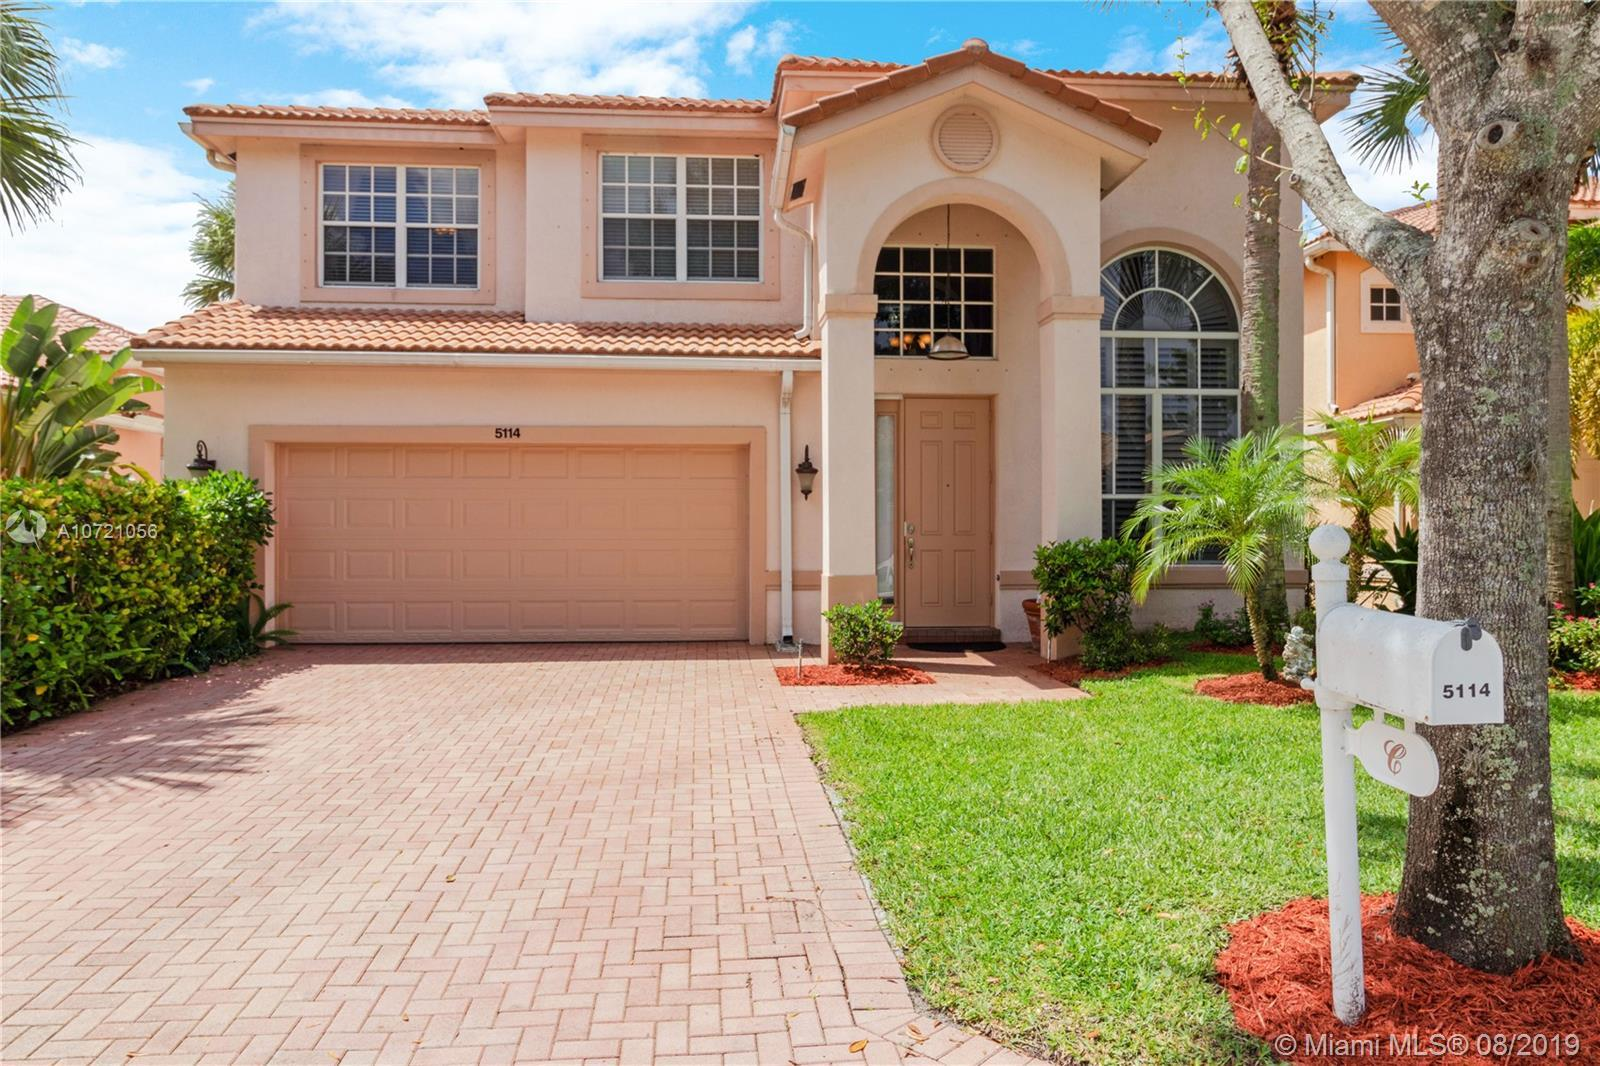 BEST DEAL!!! Spacious 5BR/3BA, 2-story model like home. located in gated community of Colony Preserv